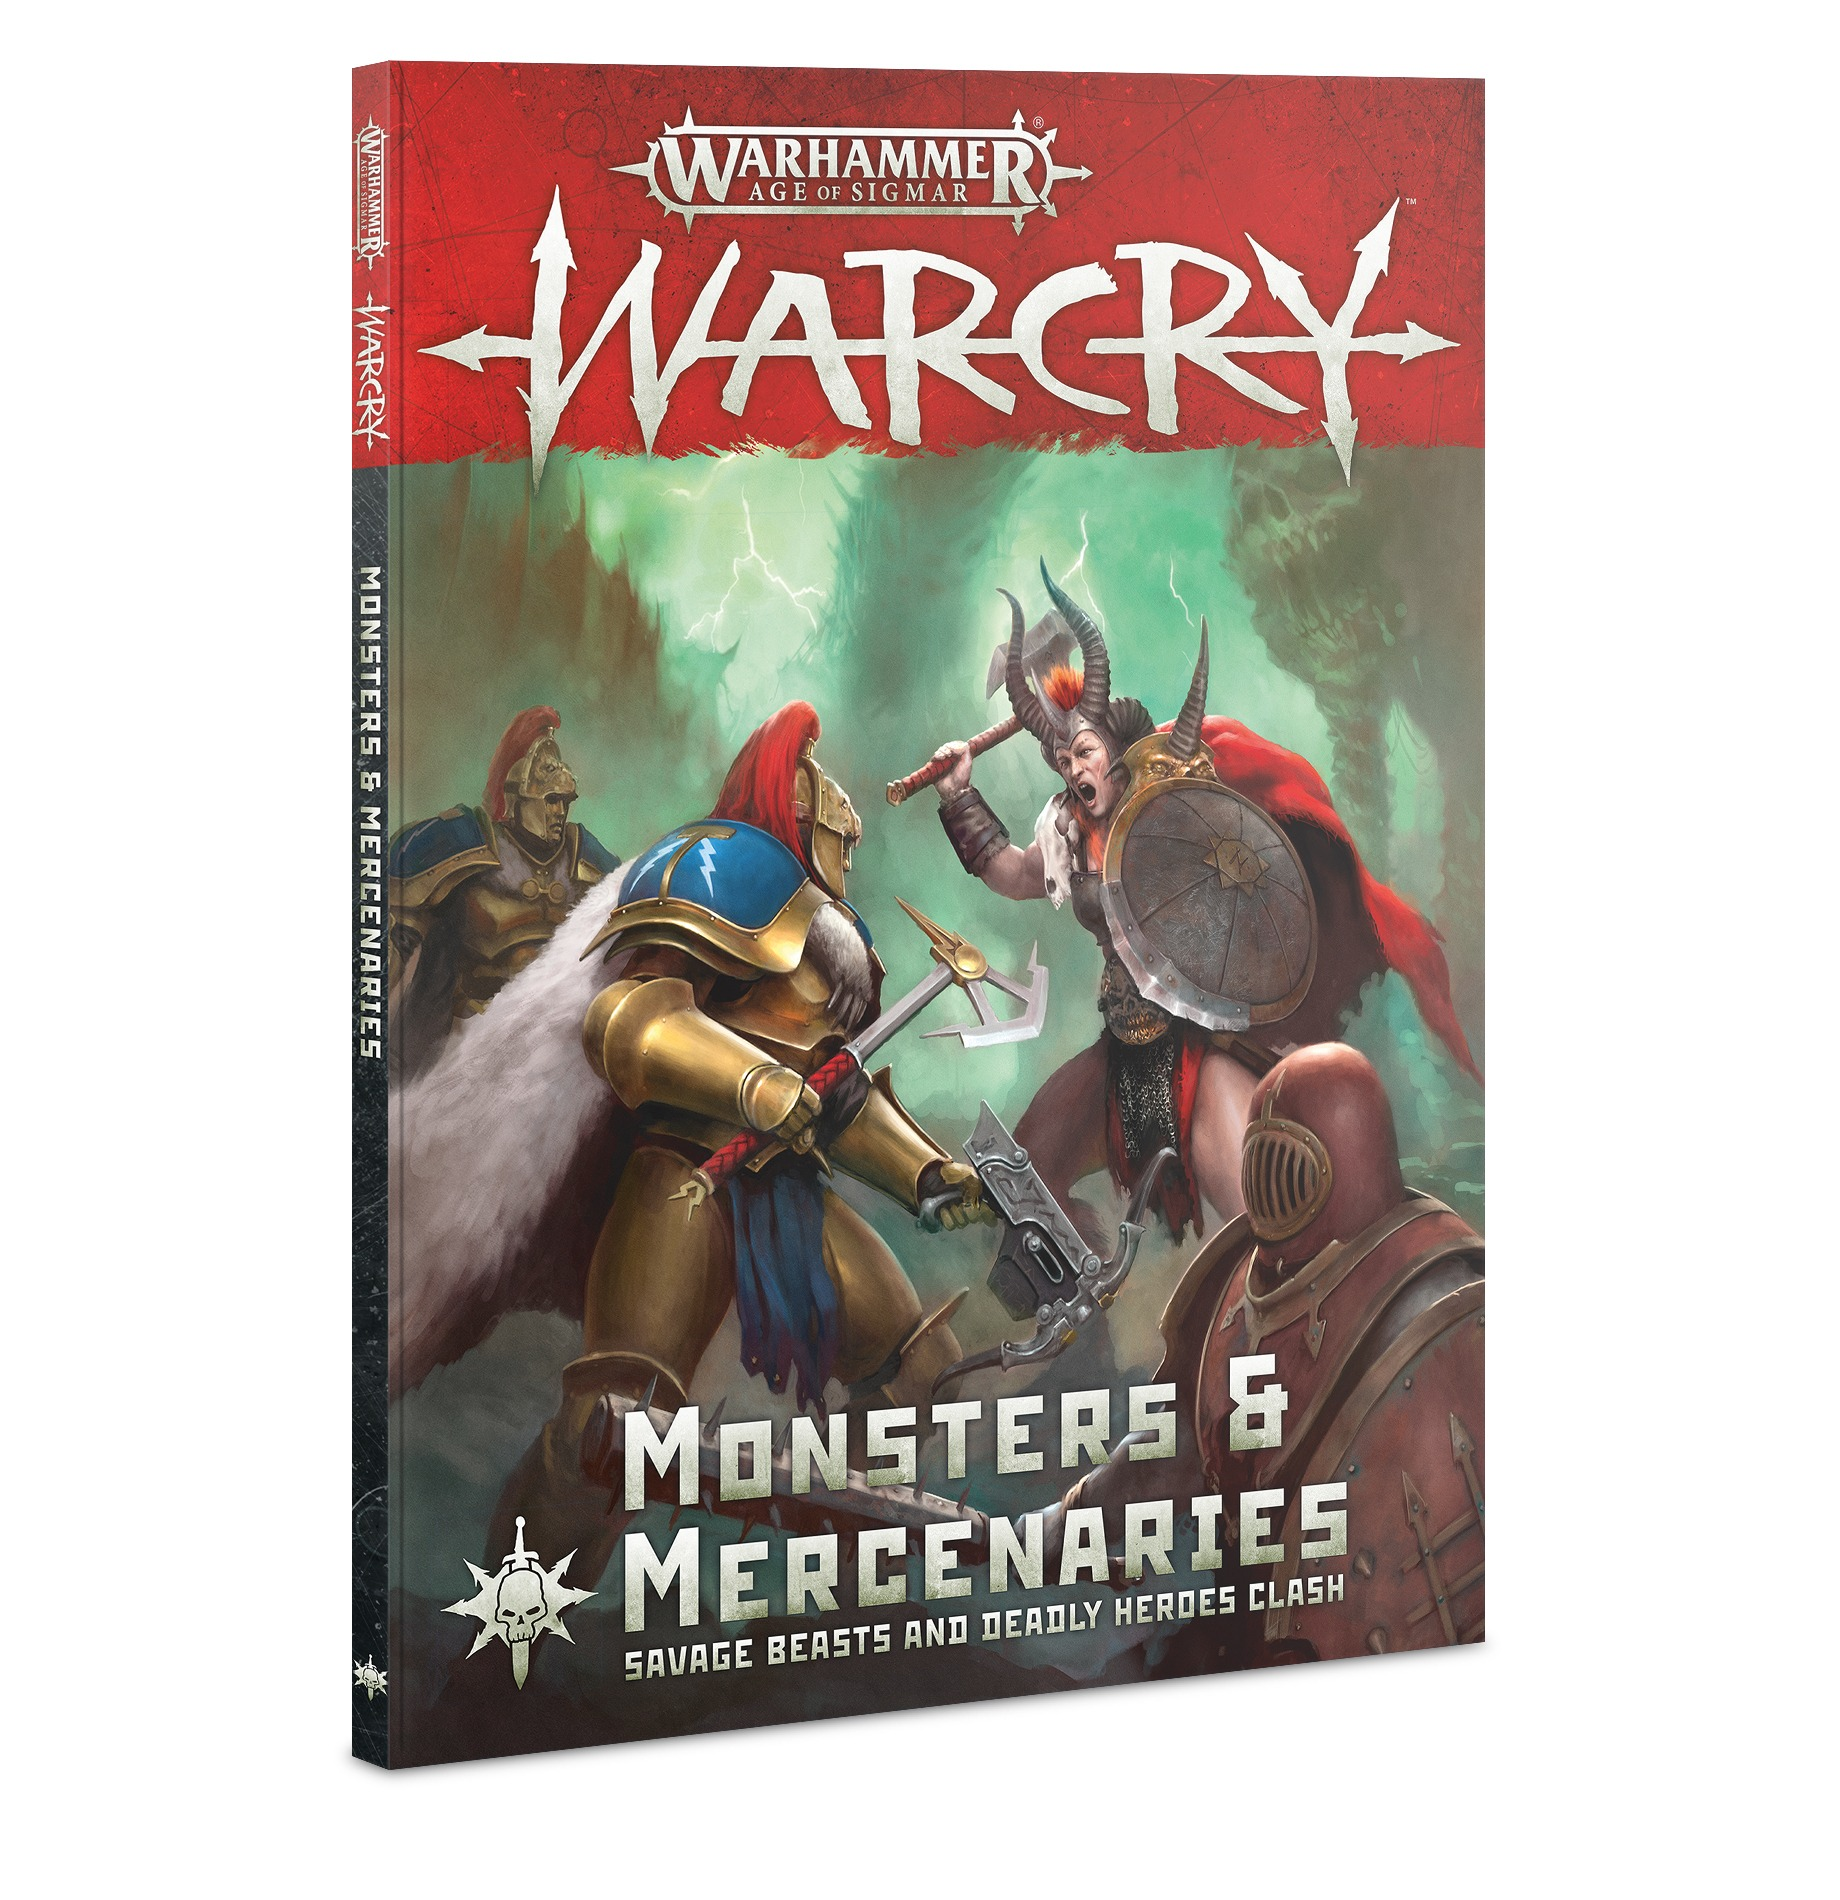 Monsters & Mercenaries, Warcry